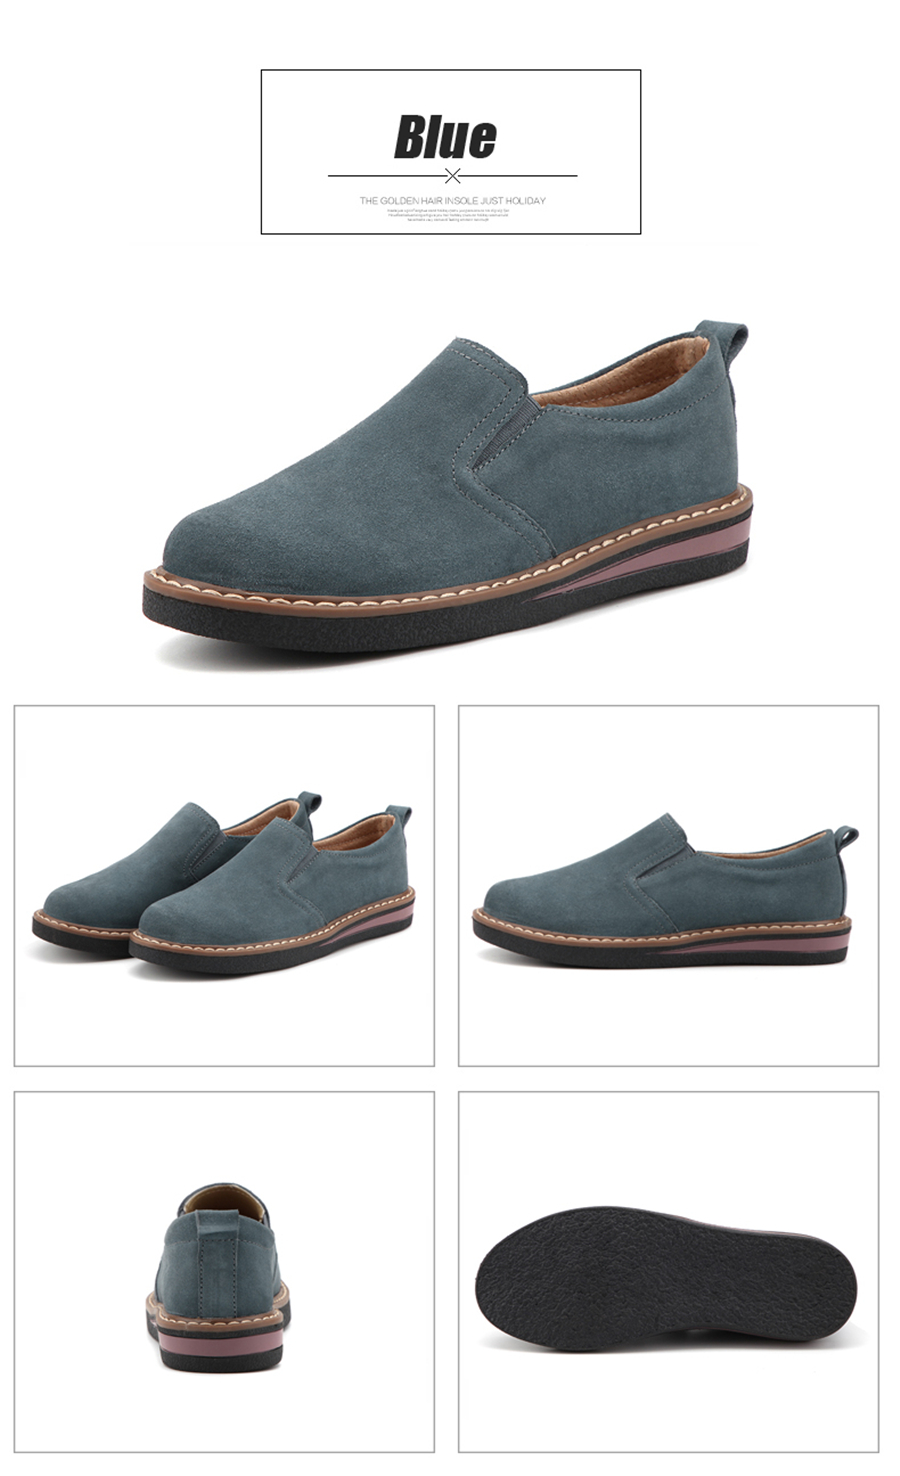 STS BRAND 2019 New Spring Women Flats Sneakers Suede Leather Round Toe Shoes Casual Shoes Women Slip On Flat Loafers Fazz Oxford (17)